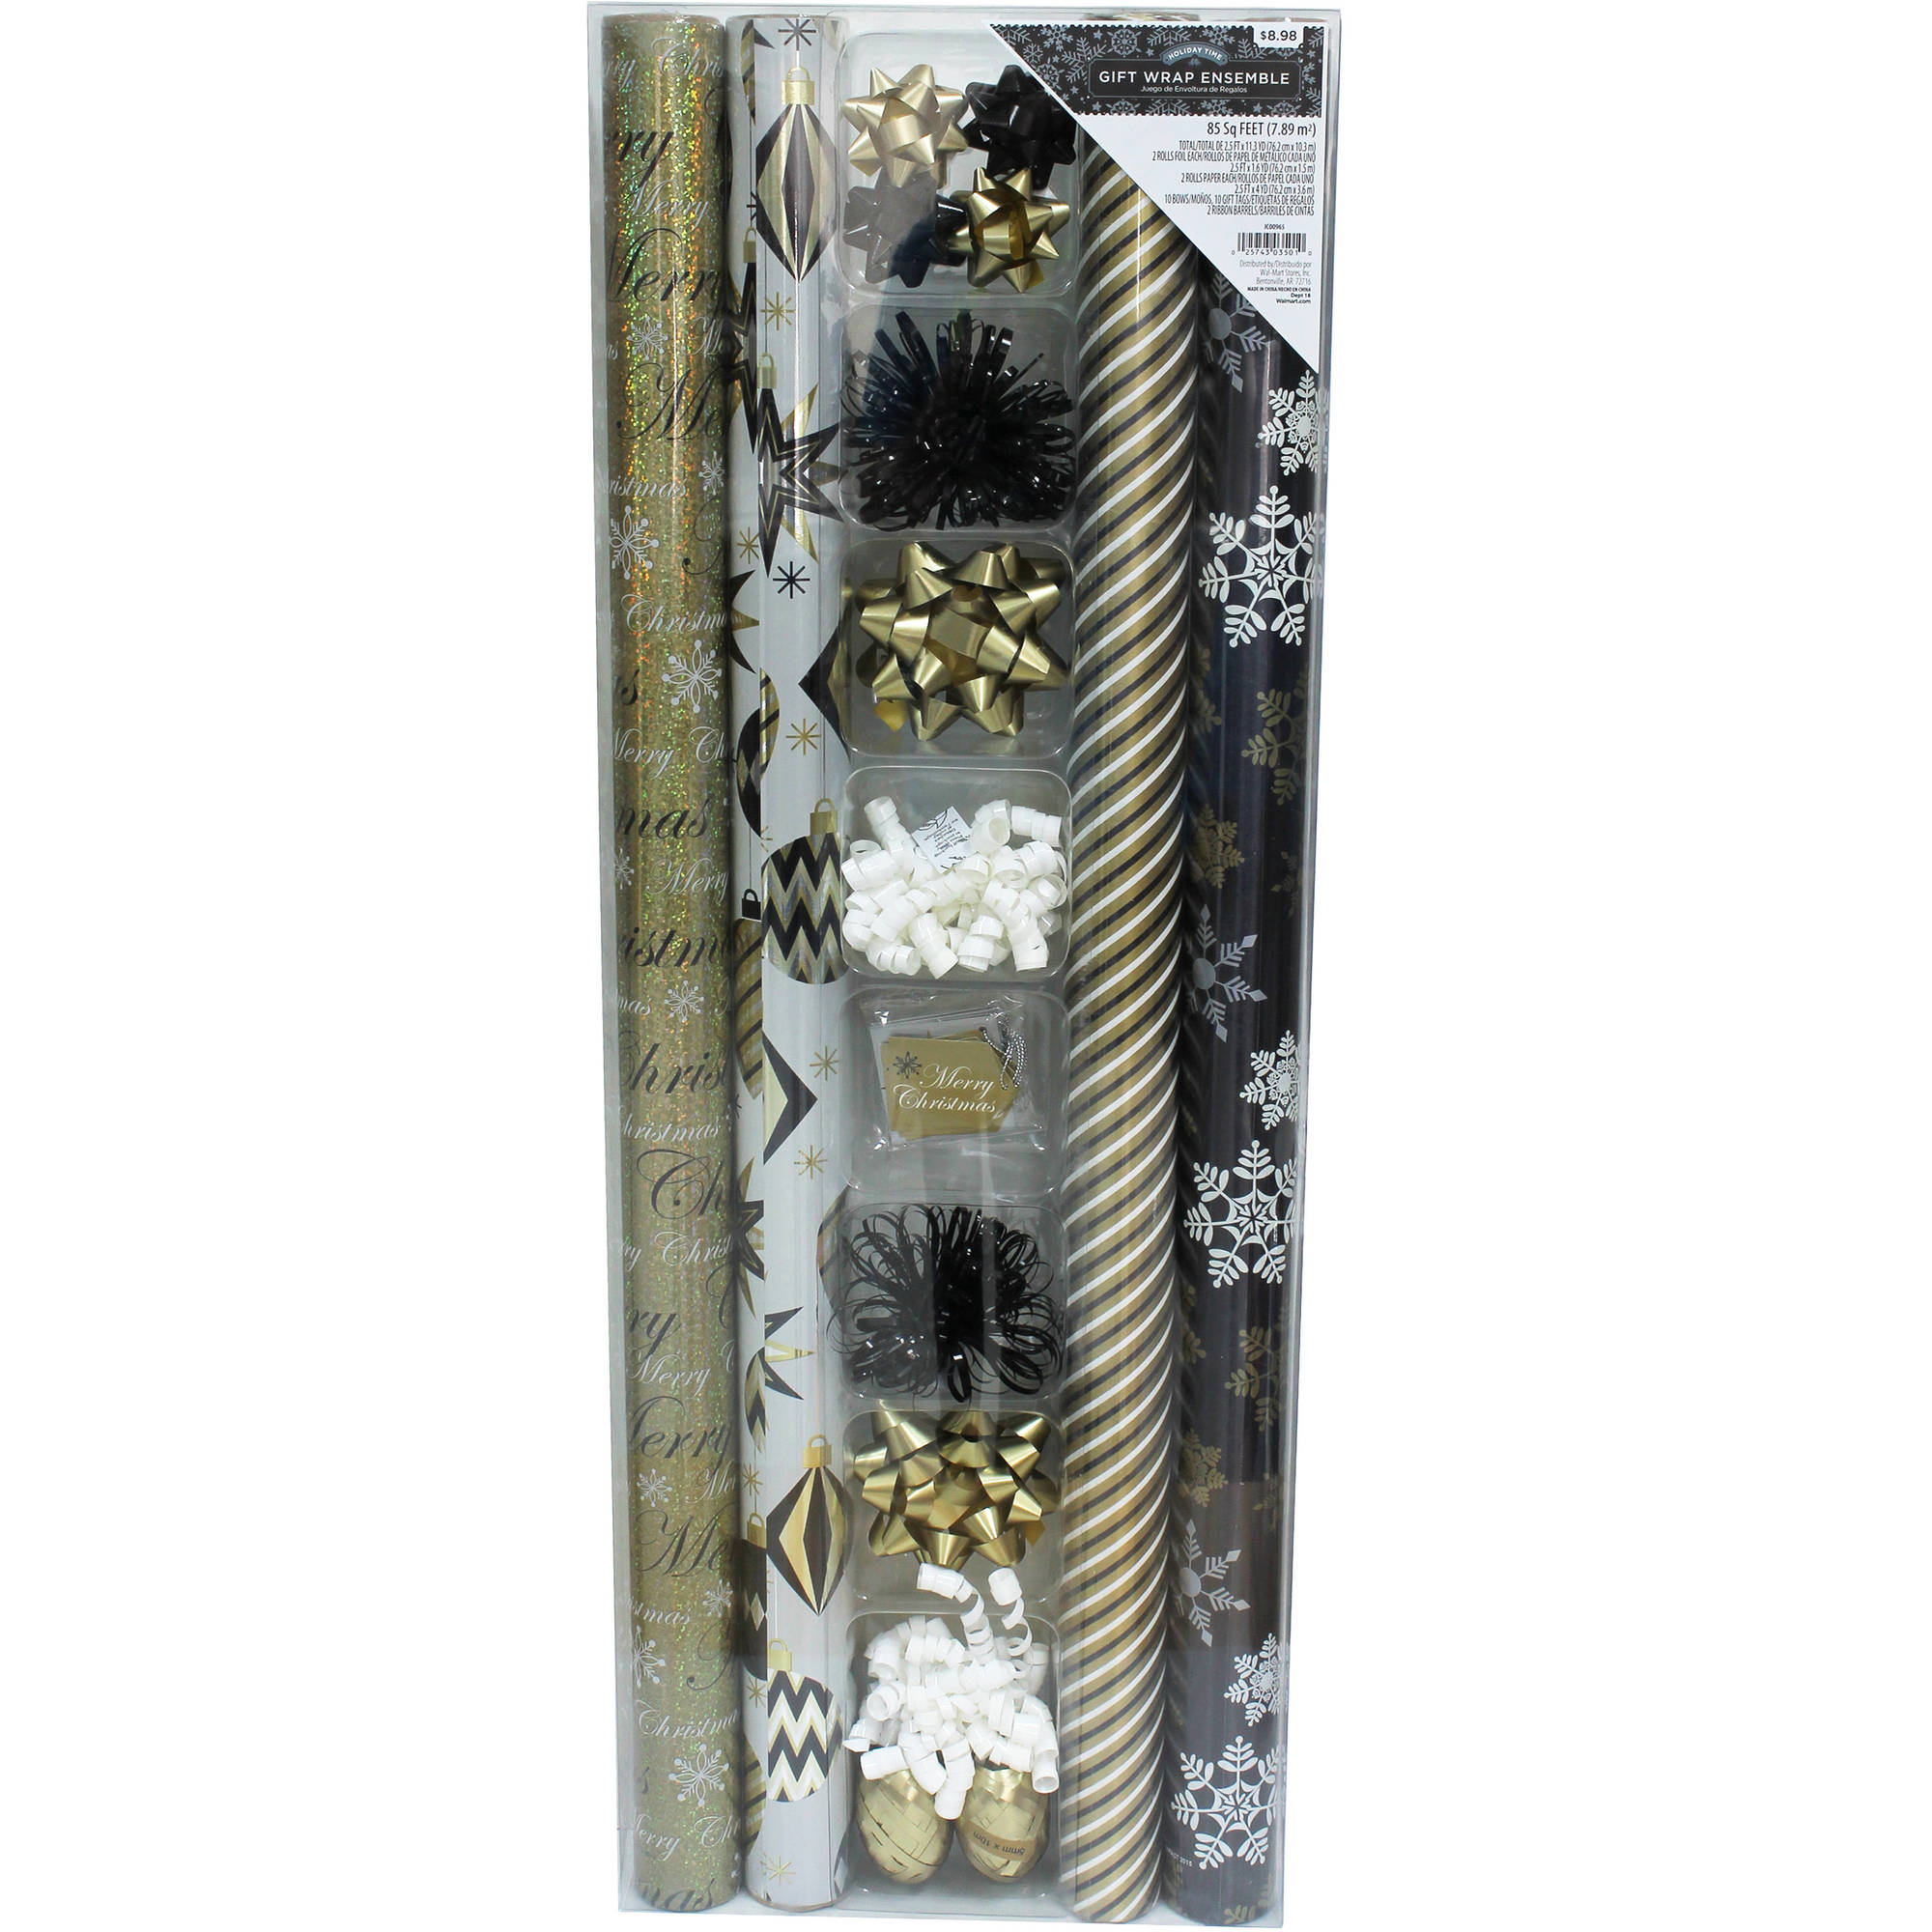 4-Roll Heavyweight 85 sq ft Giftwrapping Kit